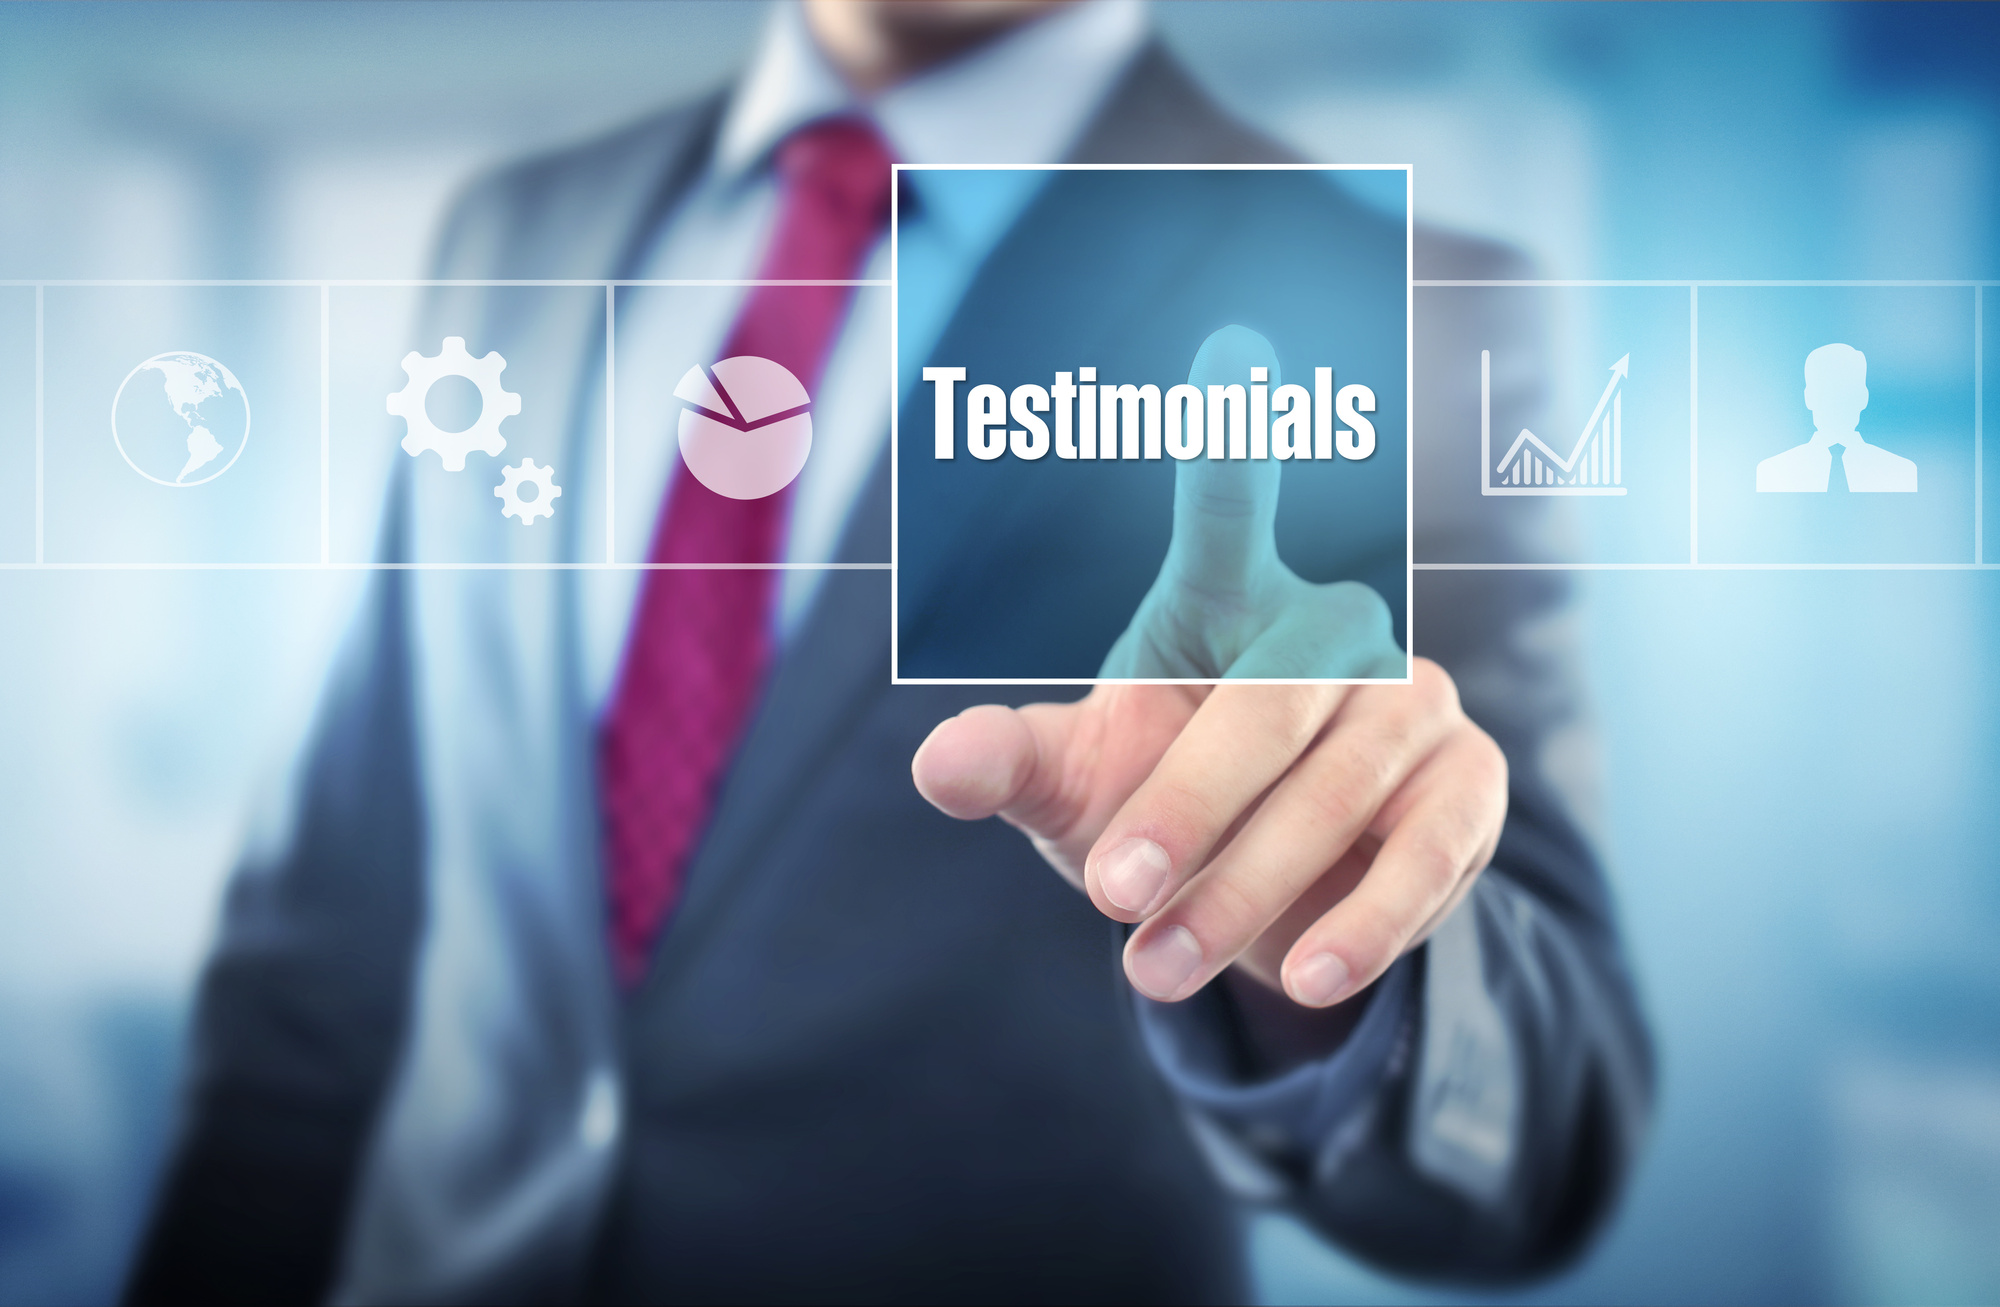 How To Use Video Testimonials to Promote Your Business